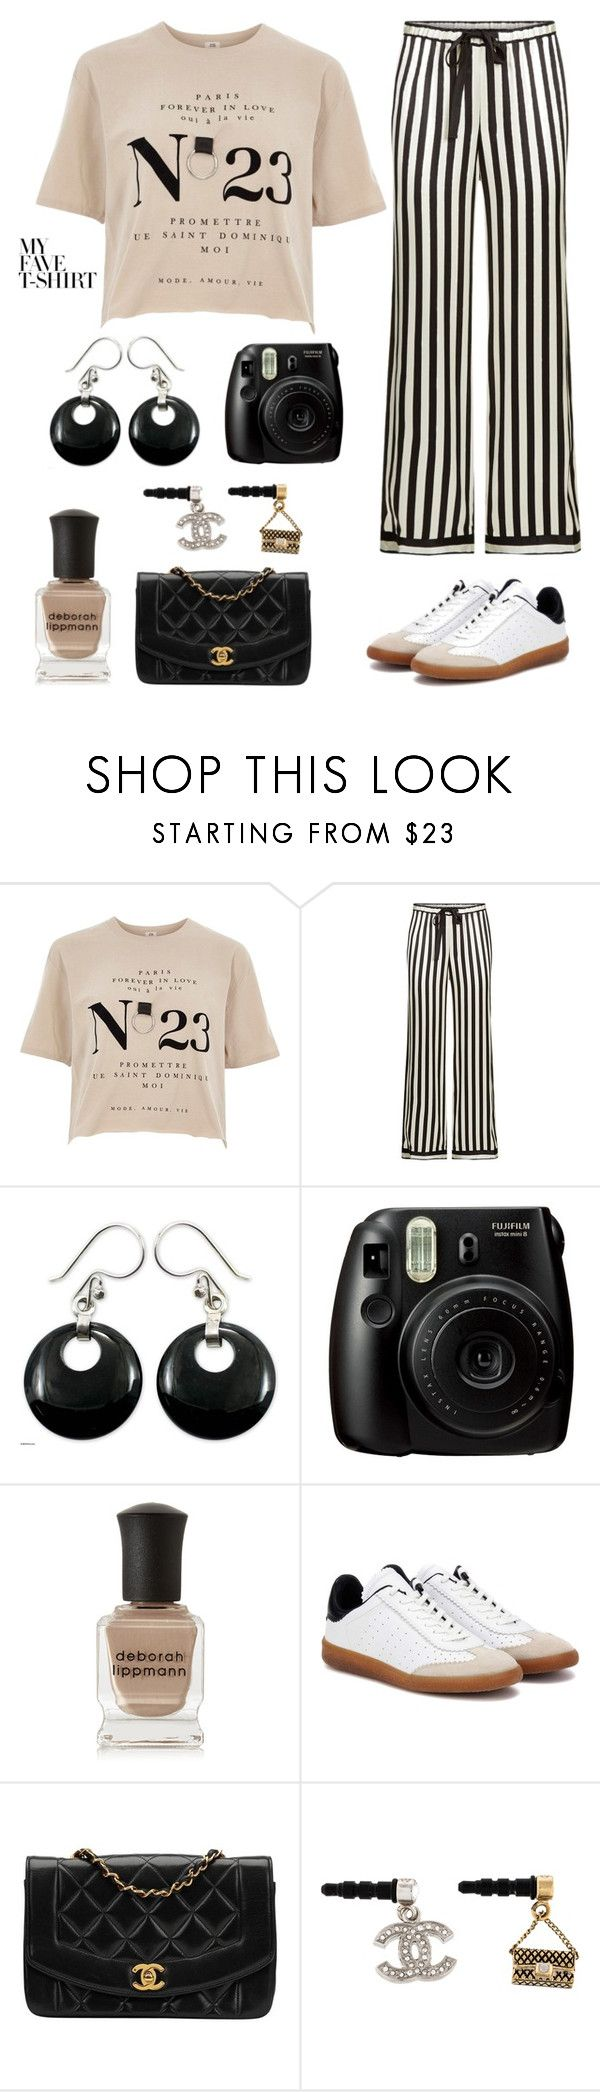 """my favorite tshirt"" by im-karla-with-a-k ❤ liked on Polyvore featuring River Island, Morgan Lane, NOVICA, Fujifilm, Deborah Lippmann, Isabel Marant, Chanel and MyFaveTshirt"